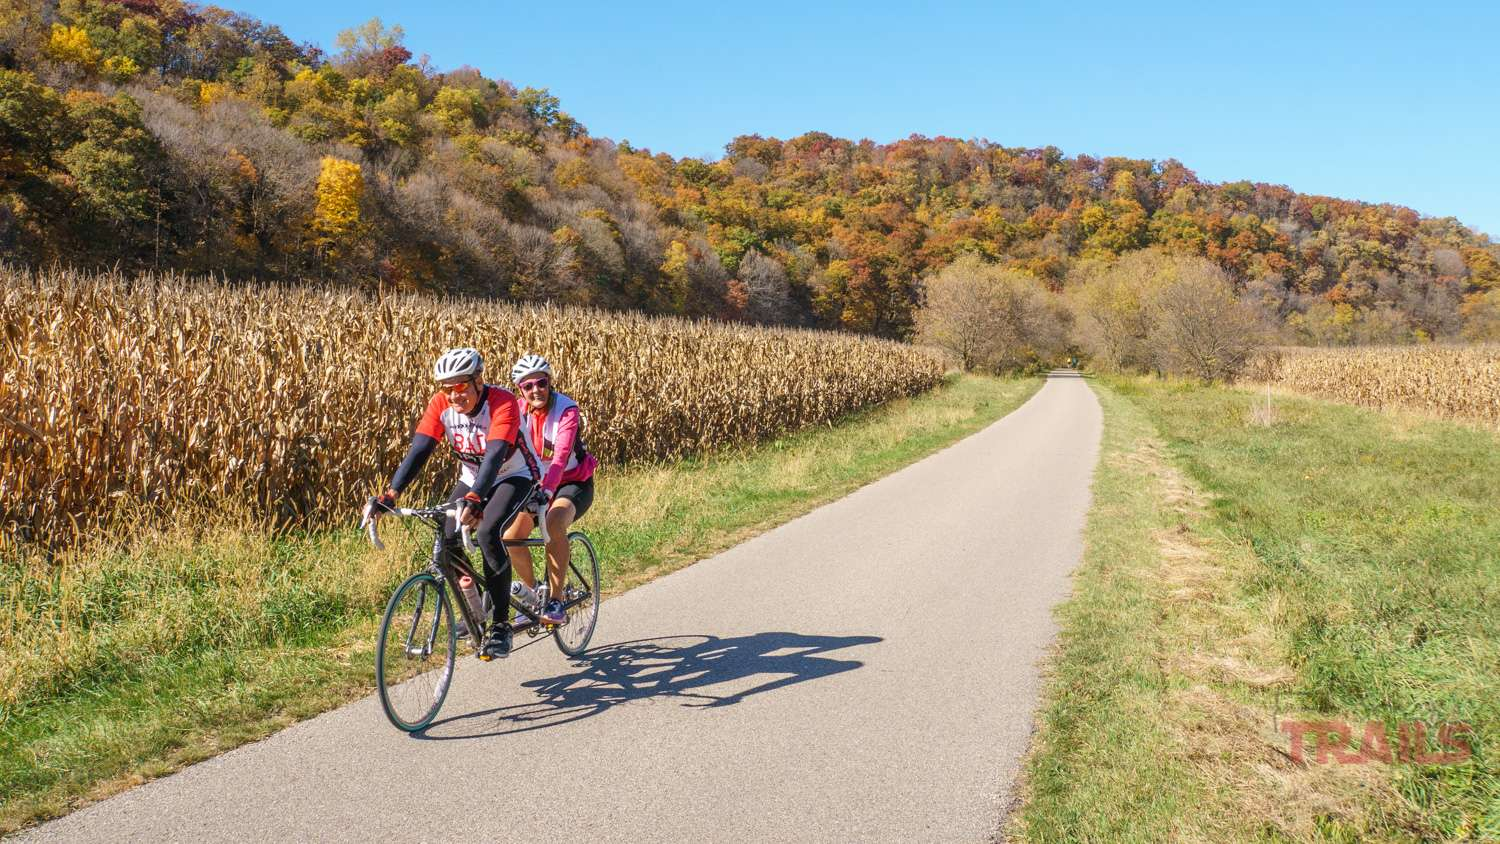 A man and woman ride a tandem bicycle on a trail